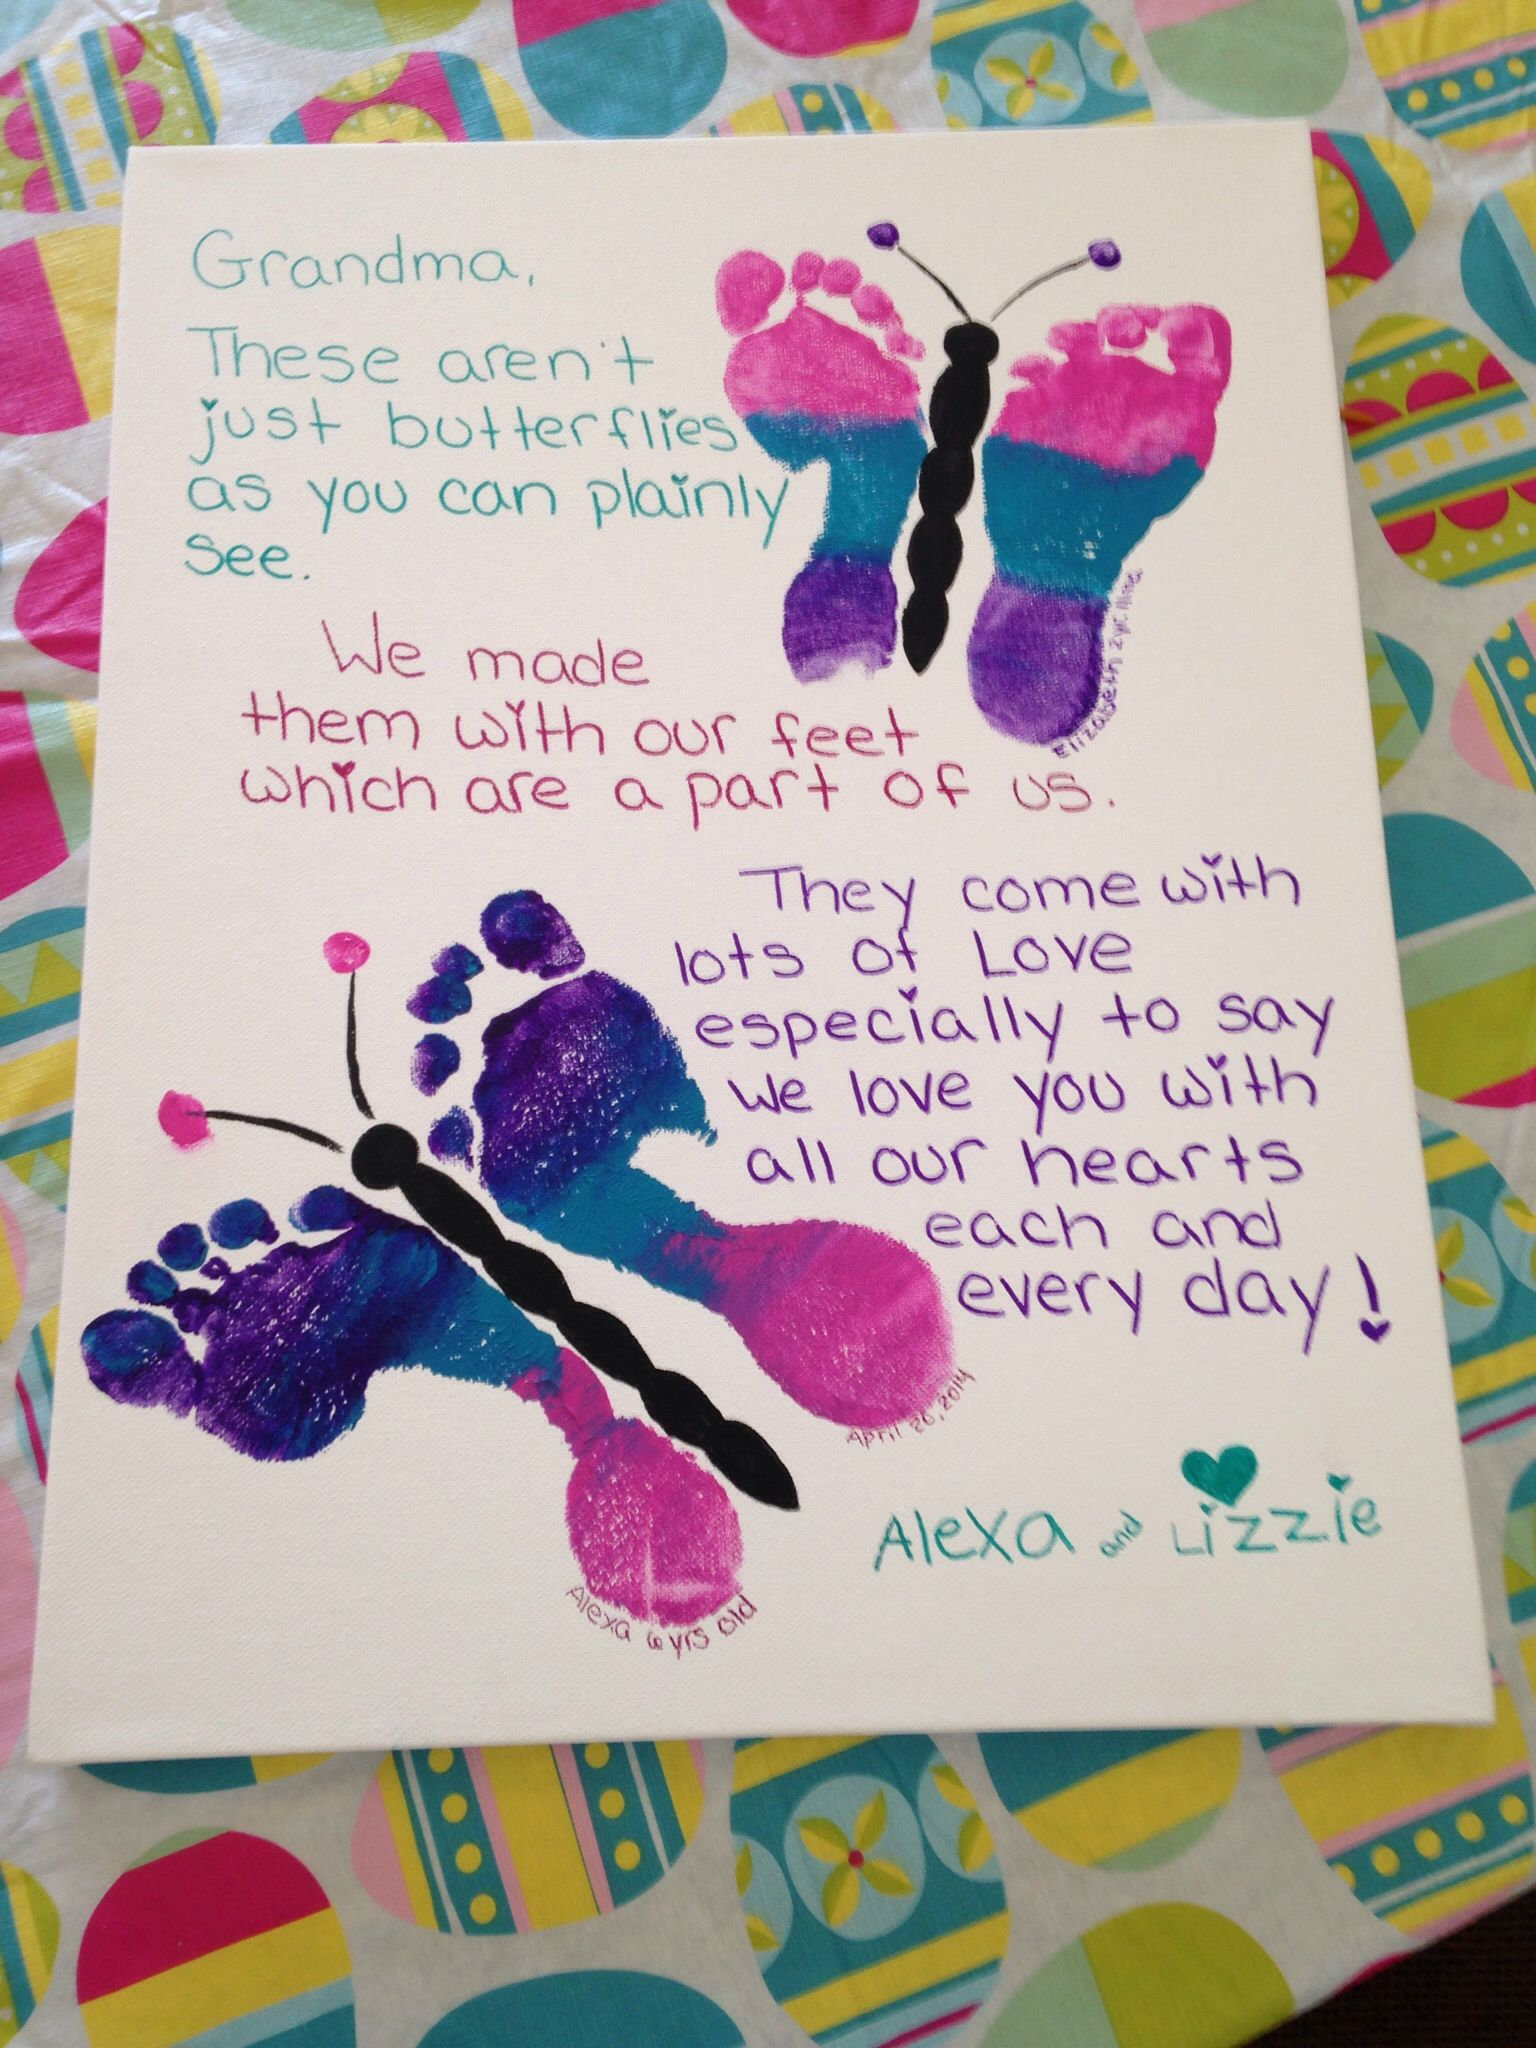 Mothers Day Idea Butterfly Footprints With A Special Poem This Is Birthday Gift For My Mom From Two Daughters I Found On Pinterest But